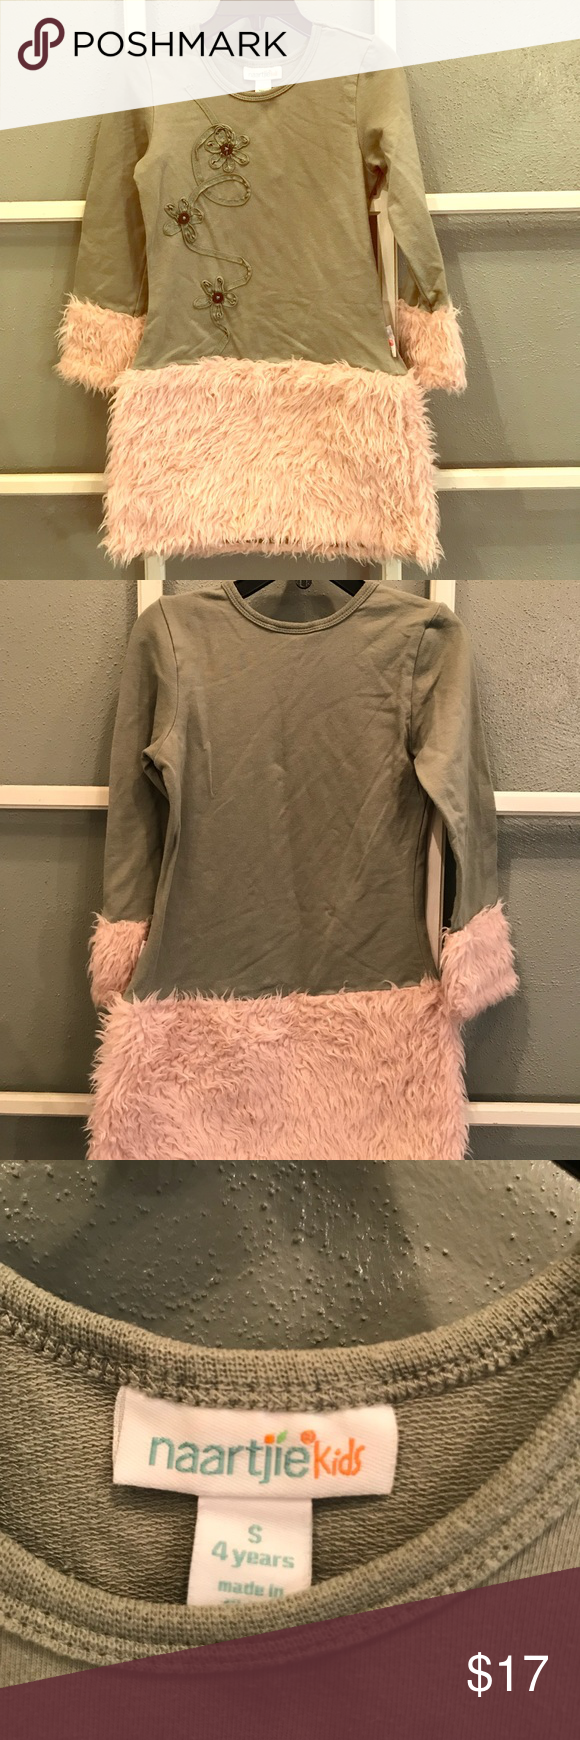 "~Naartjie Kids~ Dress with faux fur skirt Retired Naartjie... sage green dress with flower embellishments and light pink faux fur skirt. In excellent condition with no rips or stains."", just needs a good ironing. Comes from a pet and smoke free home!! naartjie Dresses #sagegreendress"